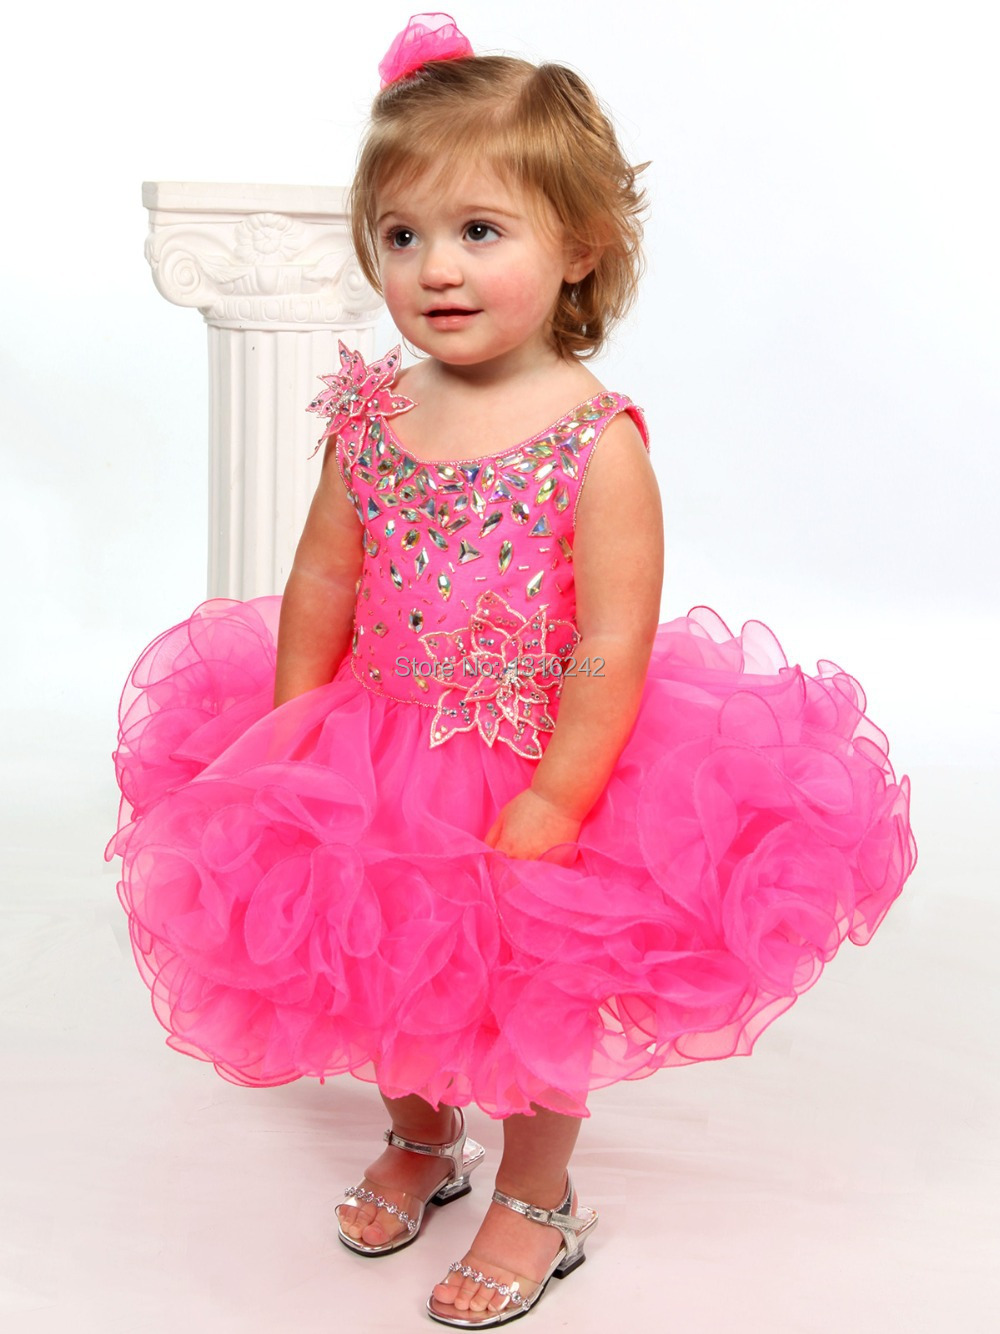 Kids, Baby, Baby Girls, Dresses at roeprocjfc.ga, offering the modern energy, style and personalized service of Lord and Taylor stores, in an enhanced, easy-to-navigate shopping experience.